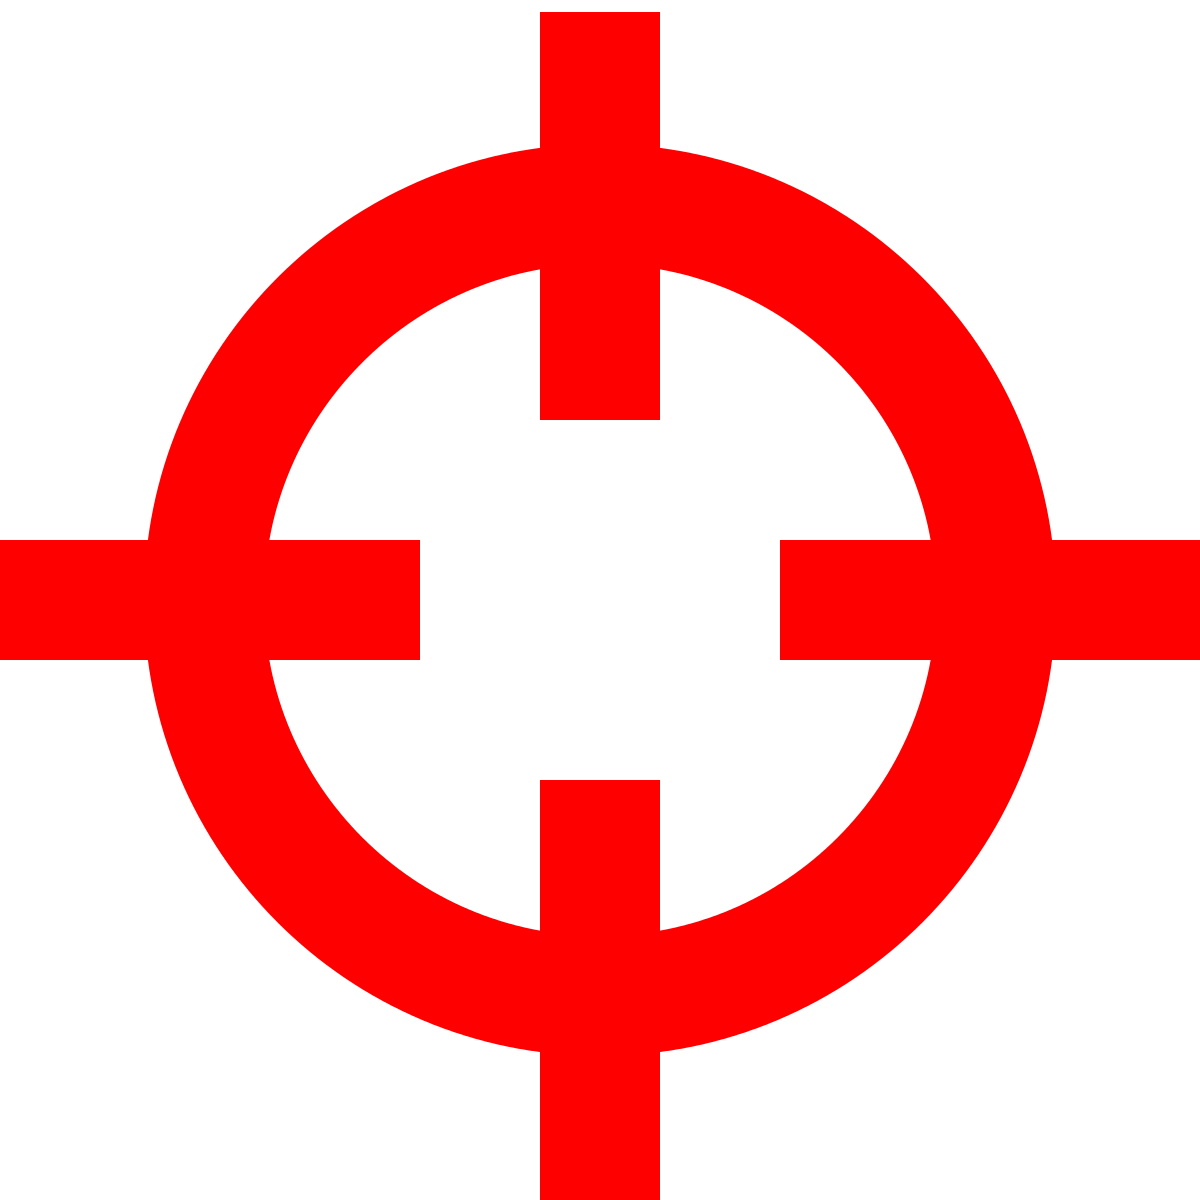 File:Crosshairs Red.svg.